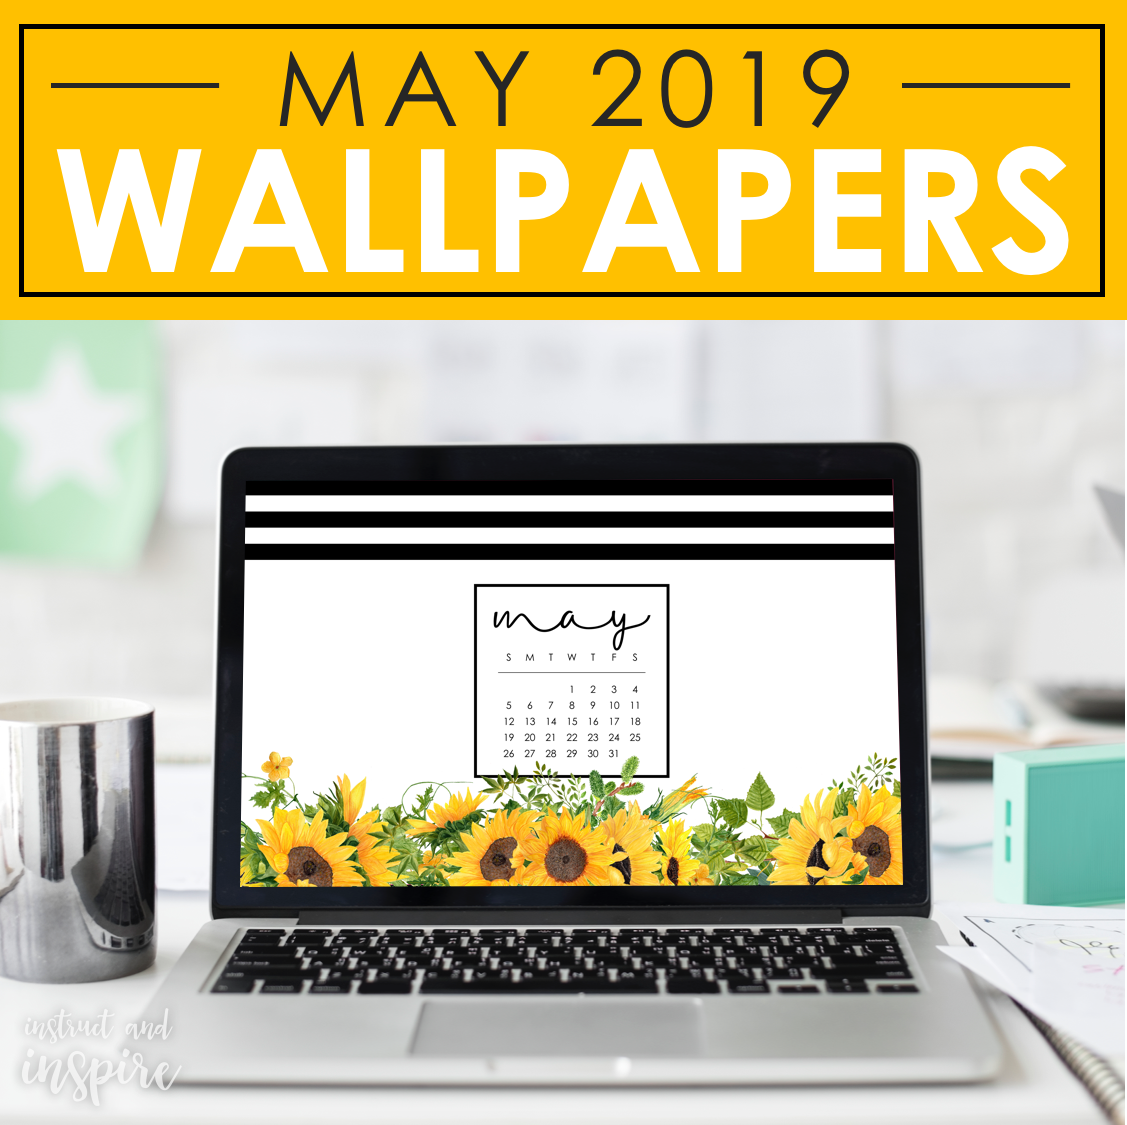 May 2019 Wallpapers Instruct And Inspire Images, Photos, Reviews